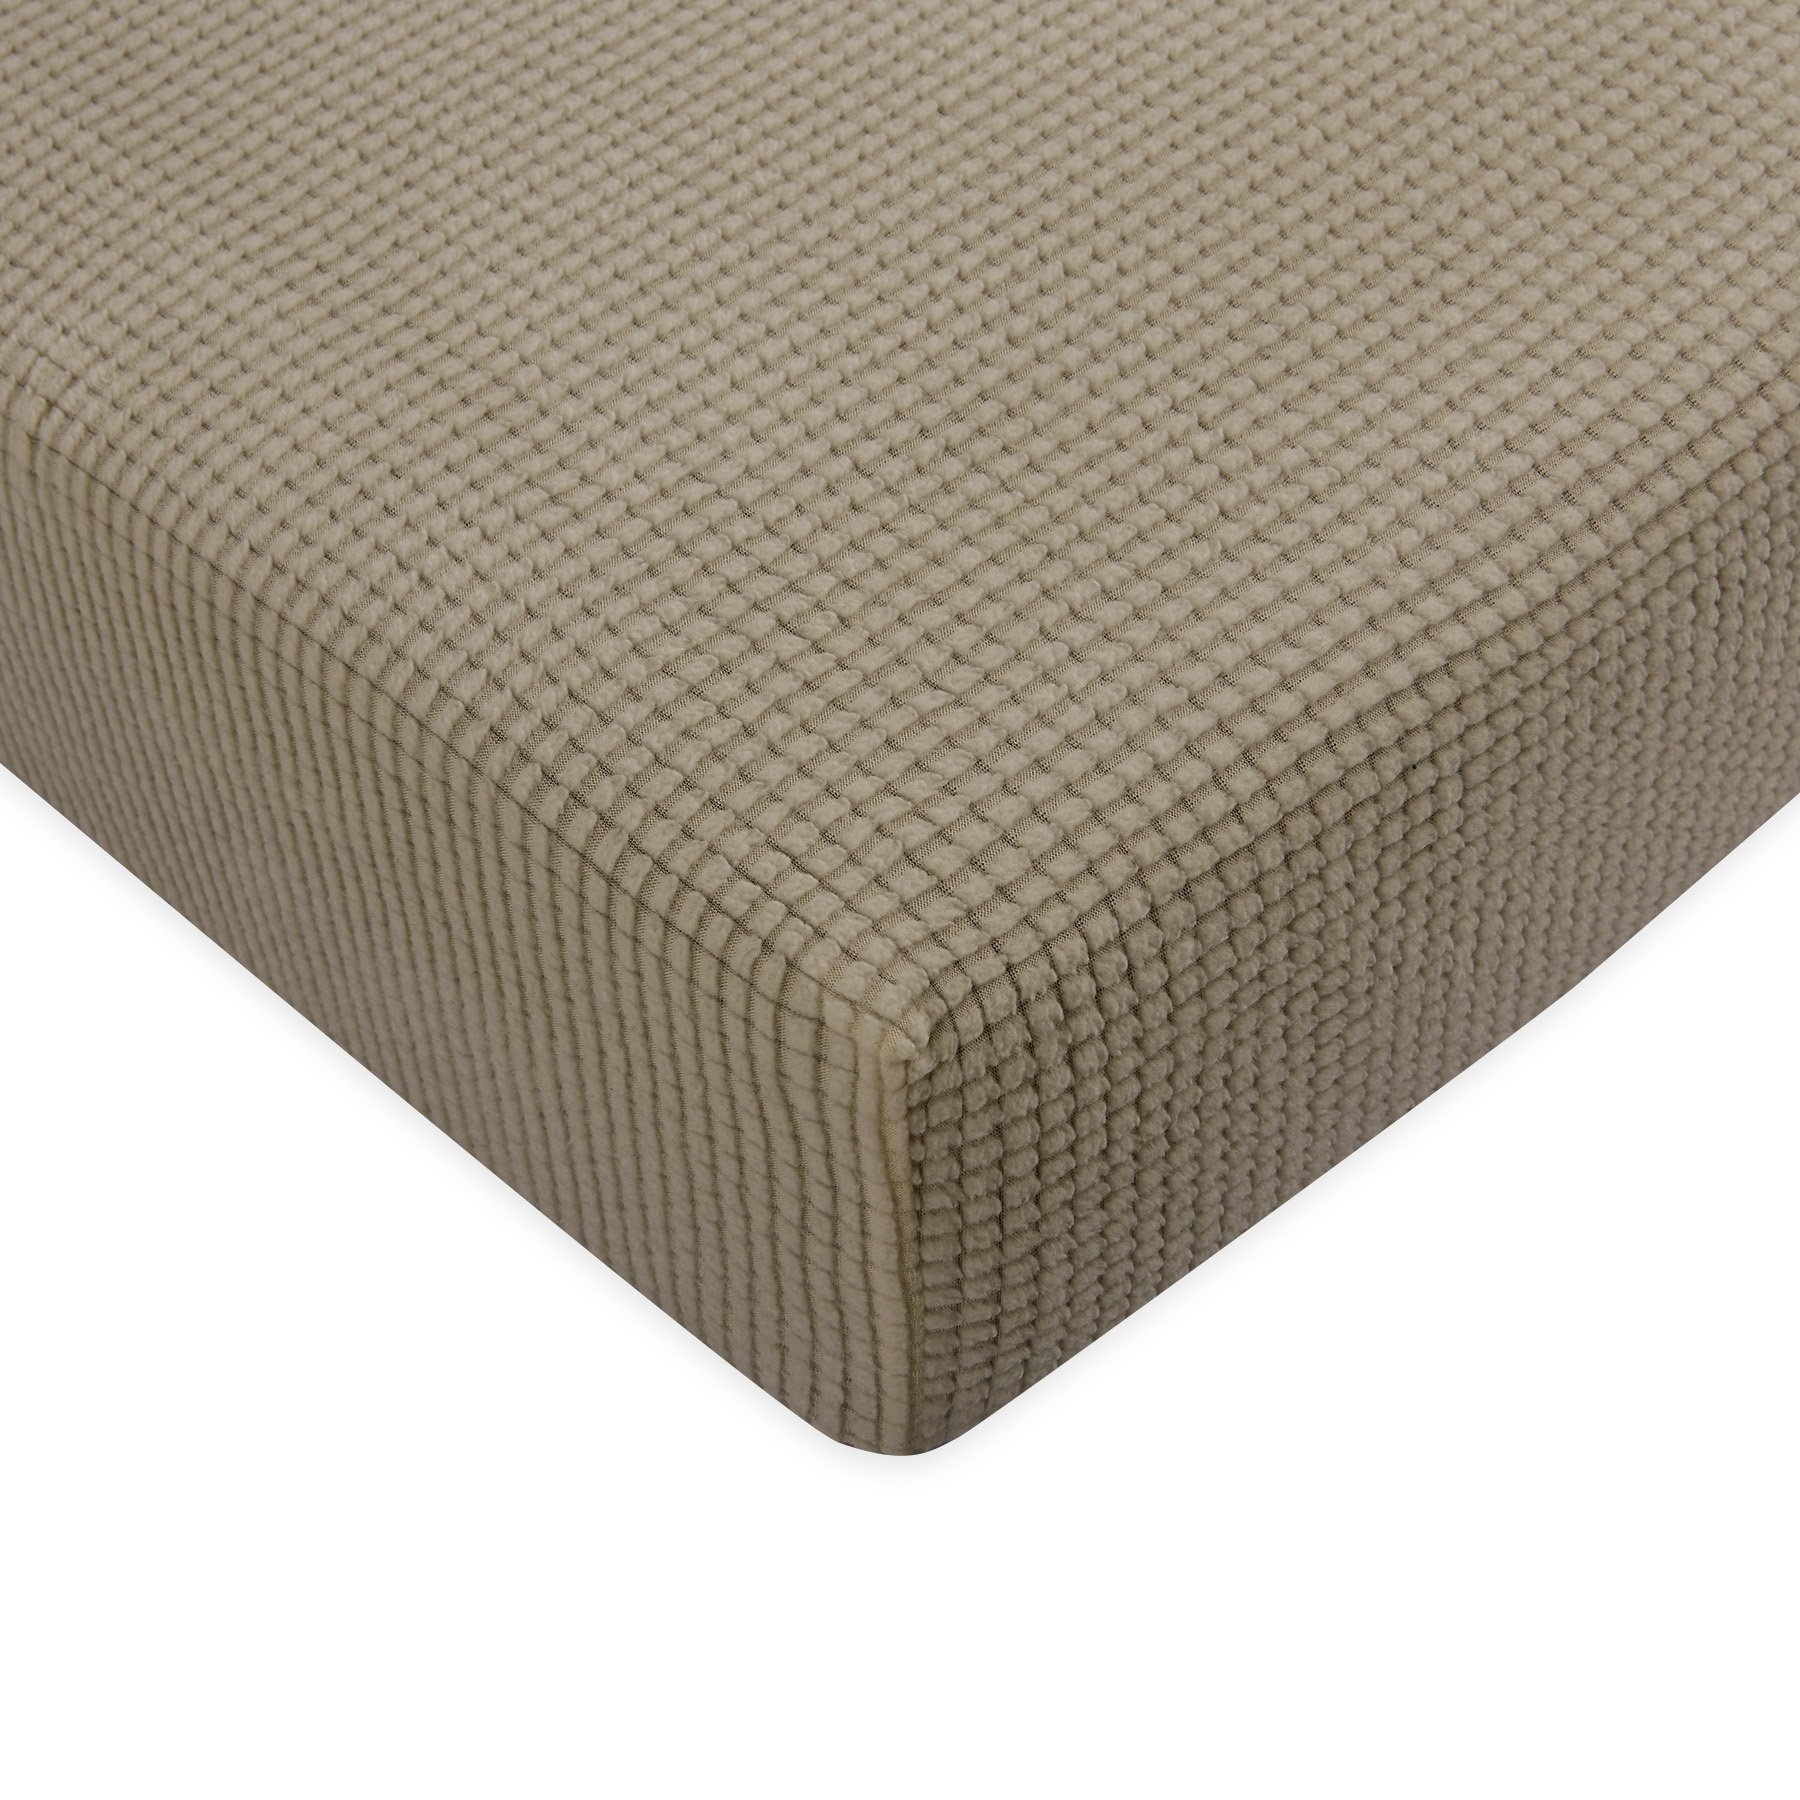 Subrtex Stretch Spandex Protector Slipcover (Loveseat Cushion, Sand)